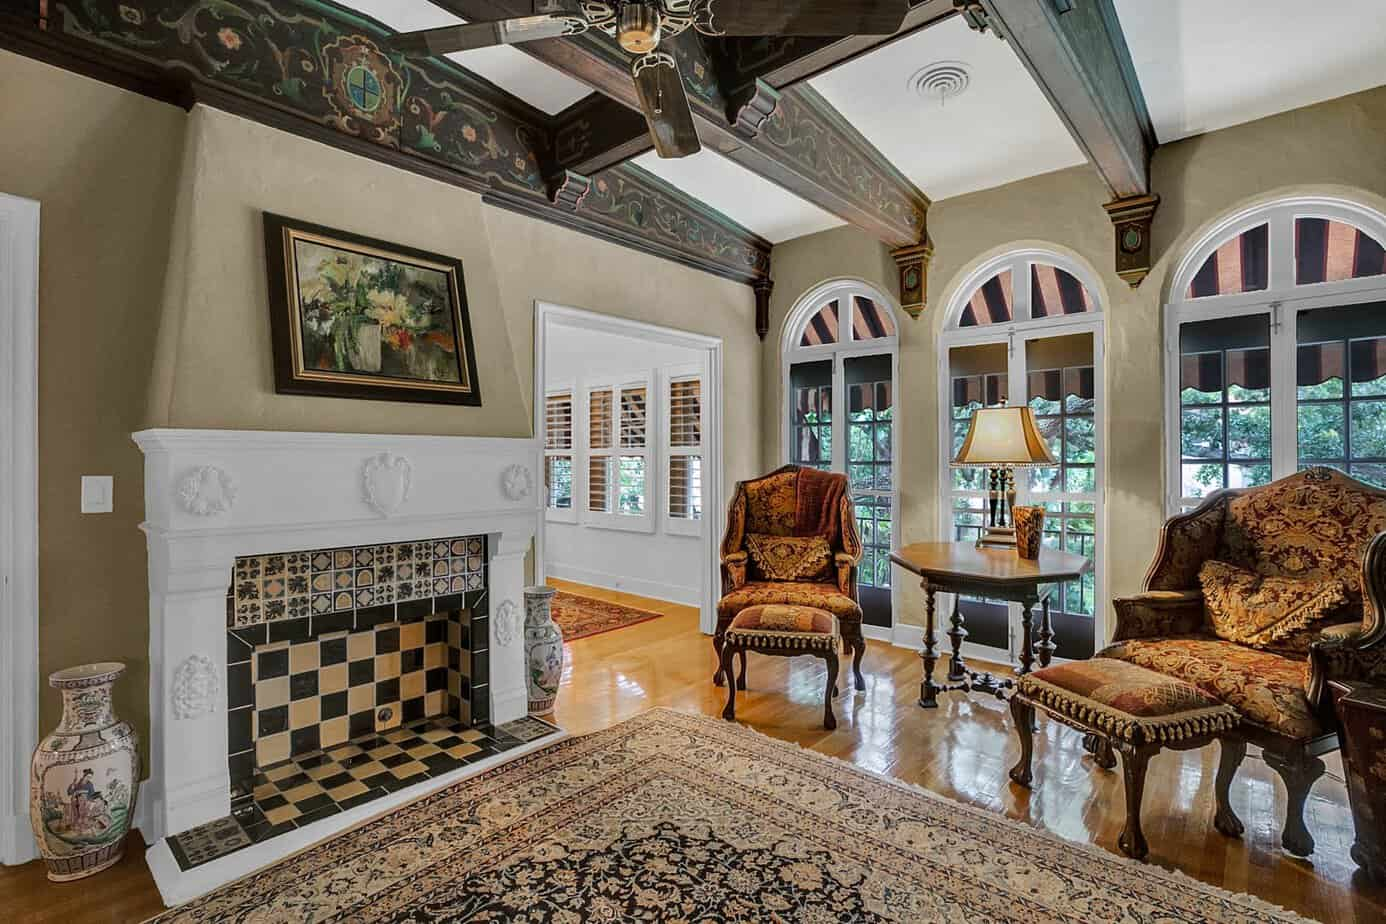 Upstairs Sitting Room with Exquisite Architectural Details And Fireplace, wood floors, decorative rug, and a chair and sofa for the home for sale at 4024 W Bay to Bay Blvd. Tampa FL 33629